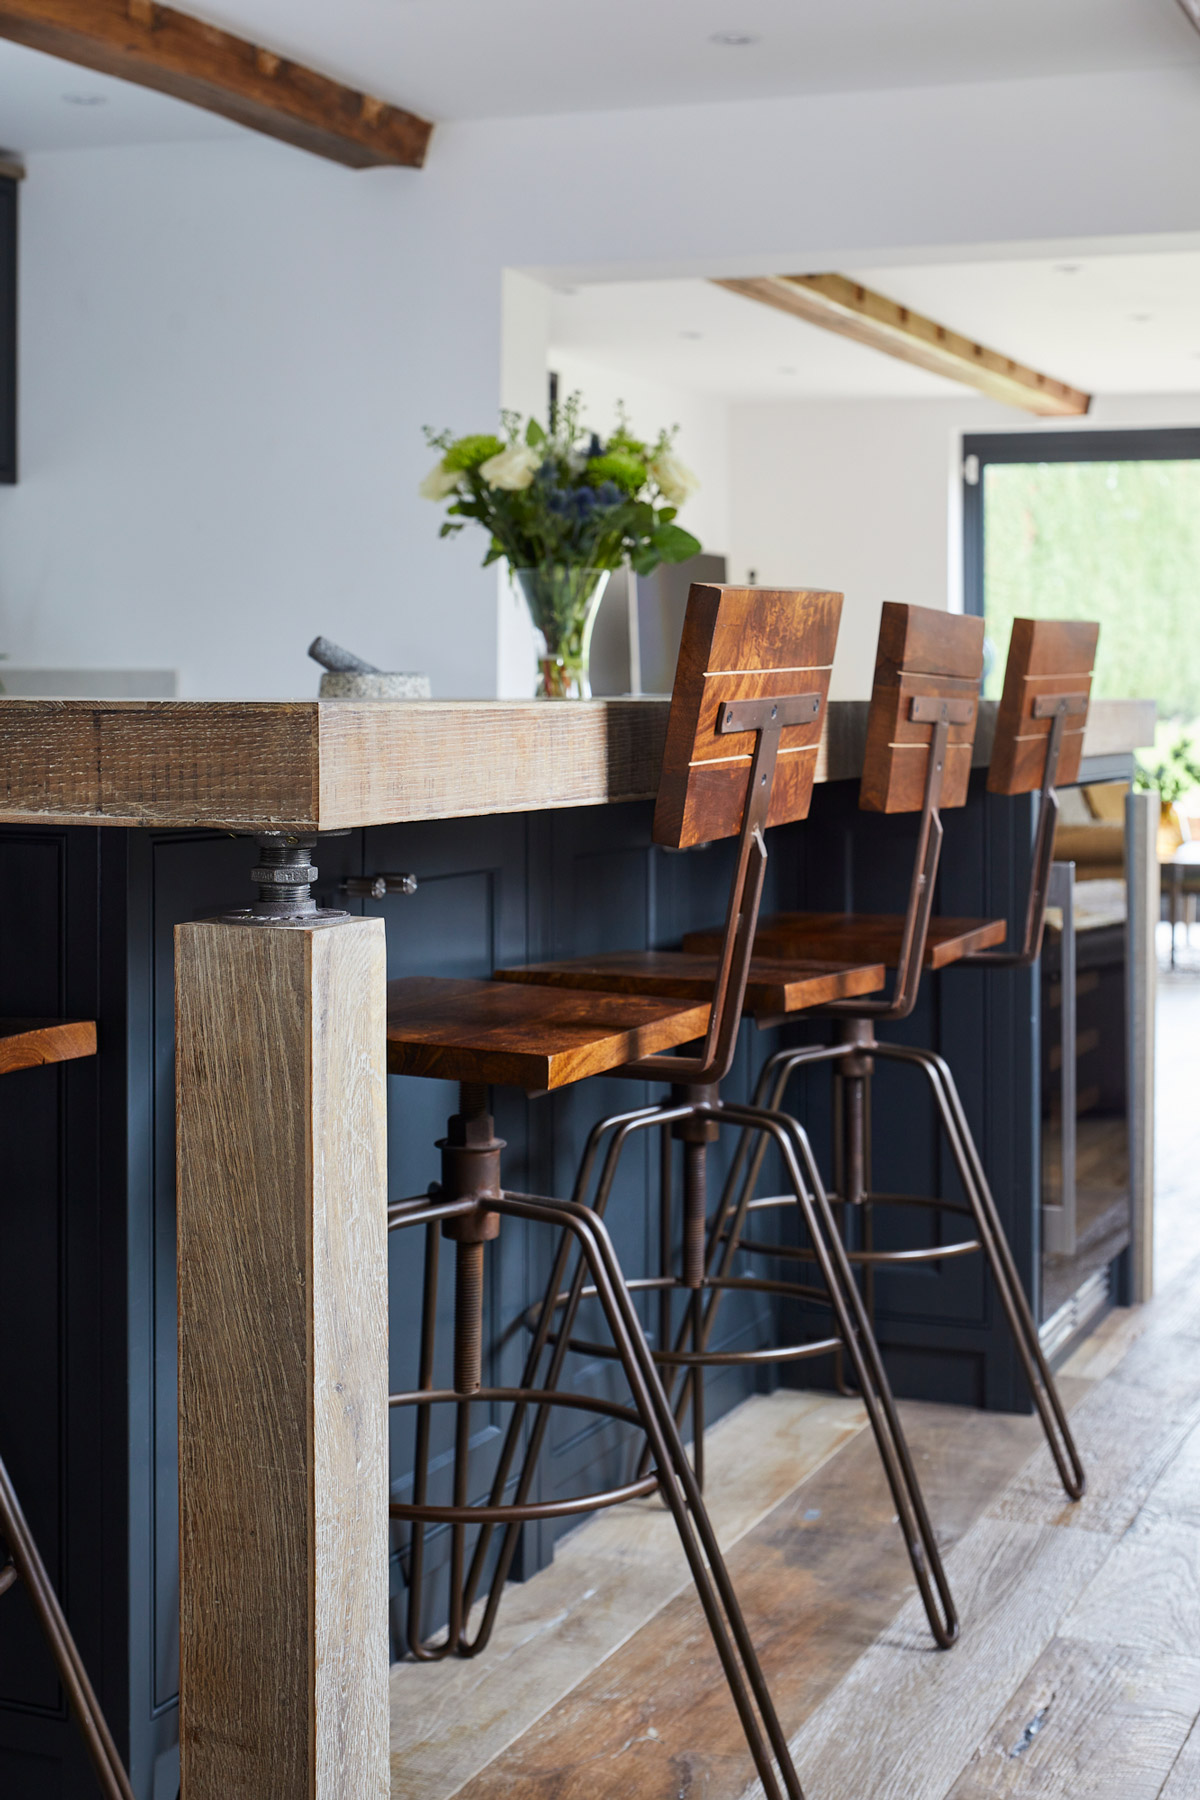 Industrial bar stool with wooden seat and backrest